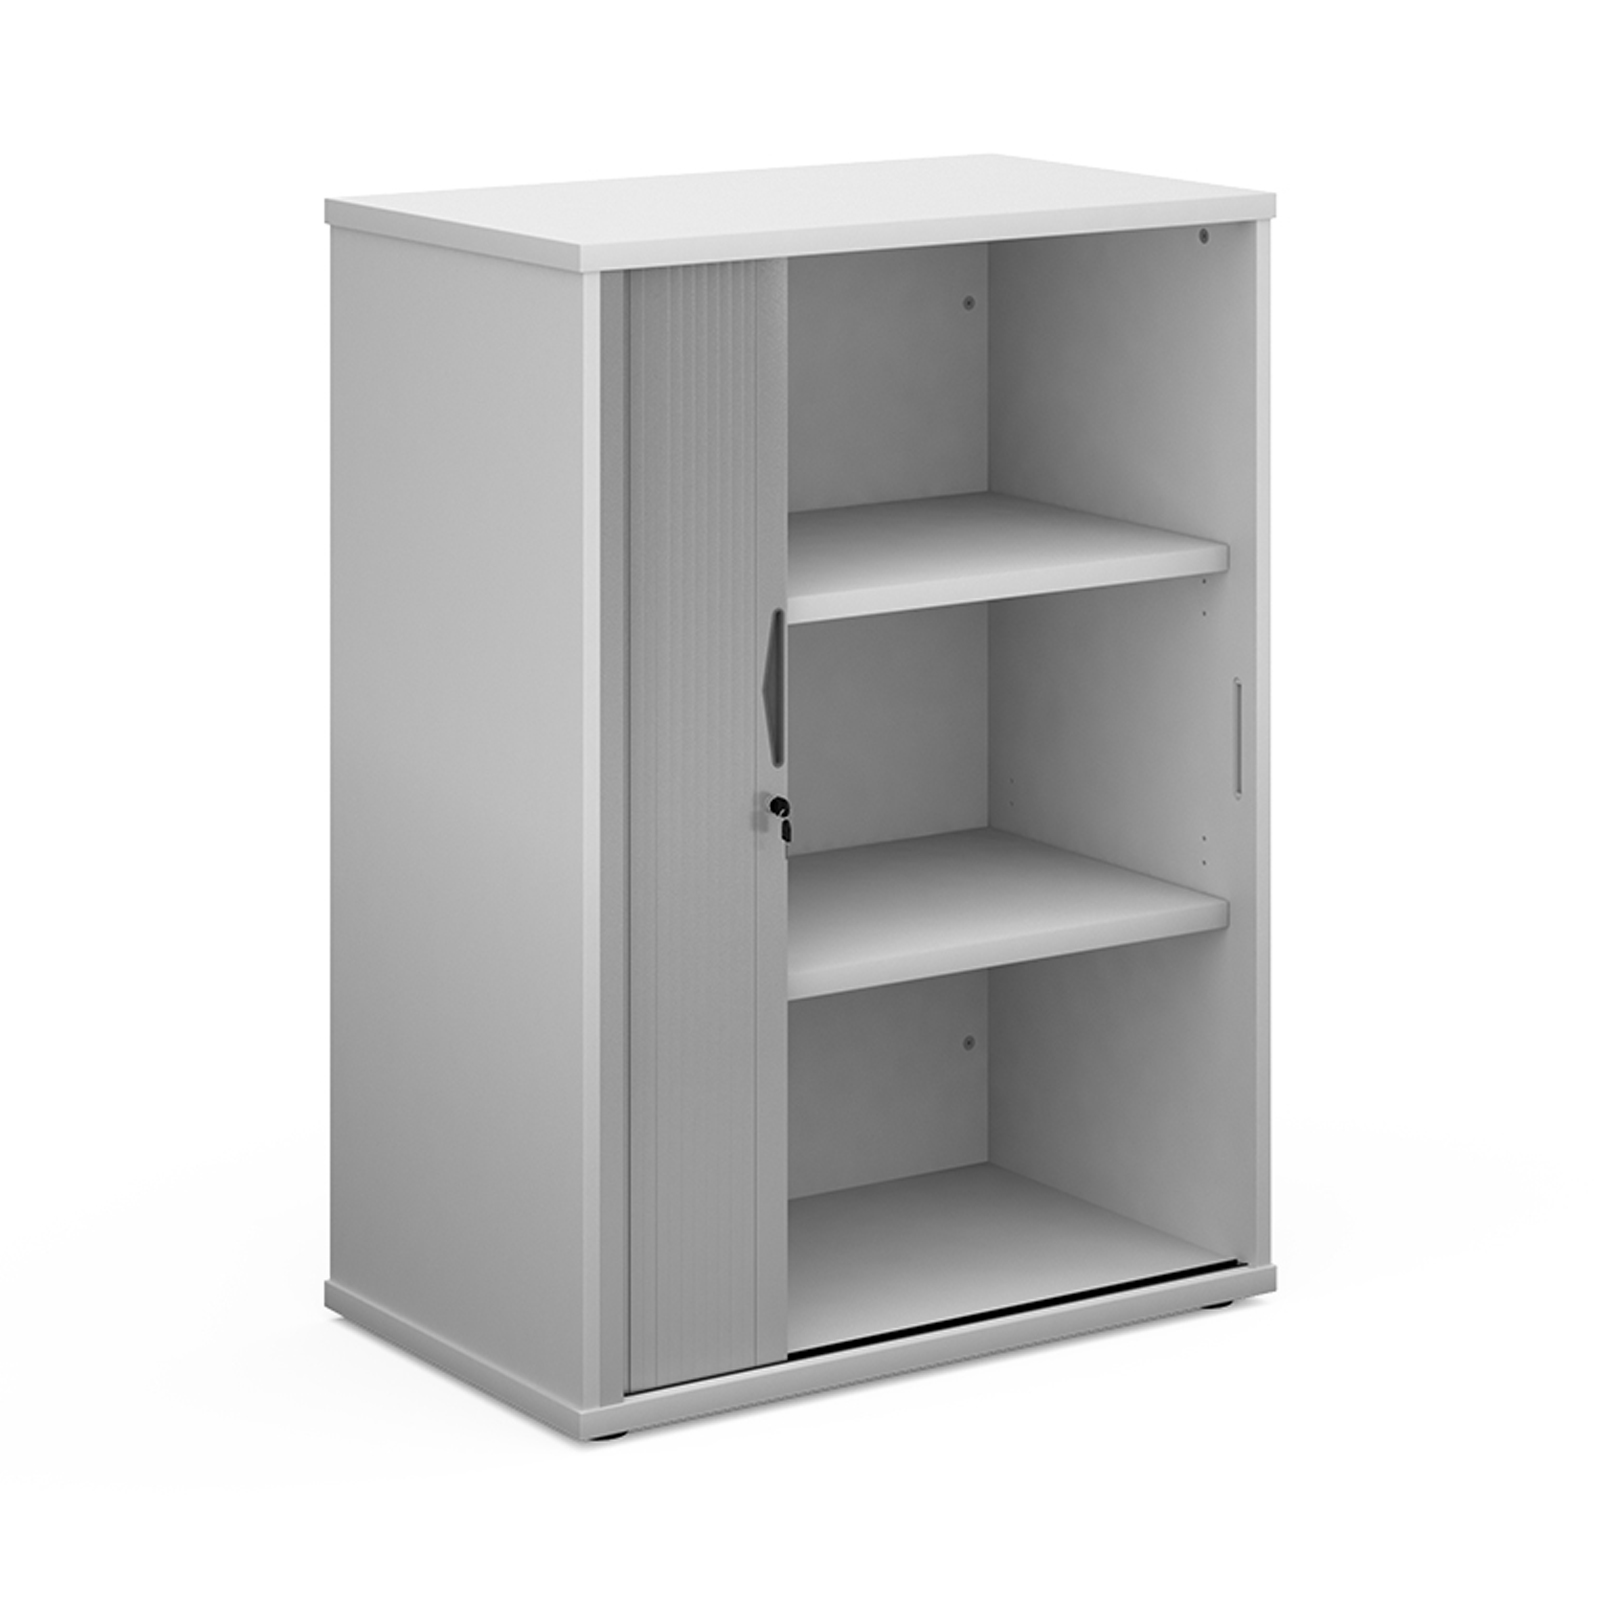 Up to 1200mm High Universal single door tambour cupboard 1090mm high with 2 shelves - white with silver door